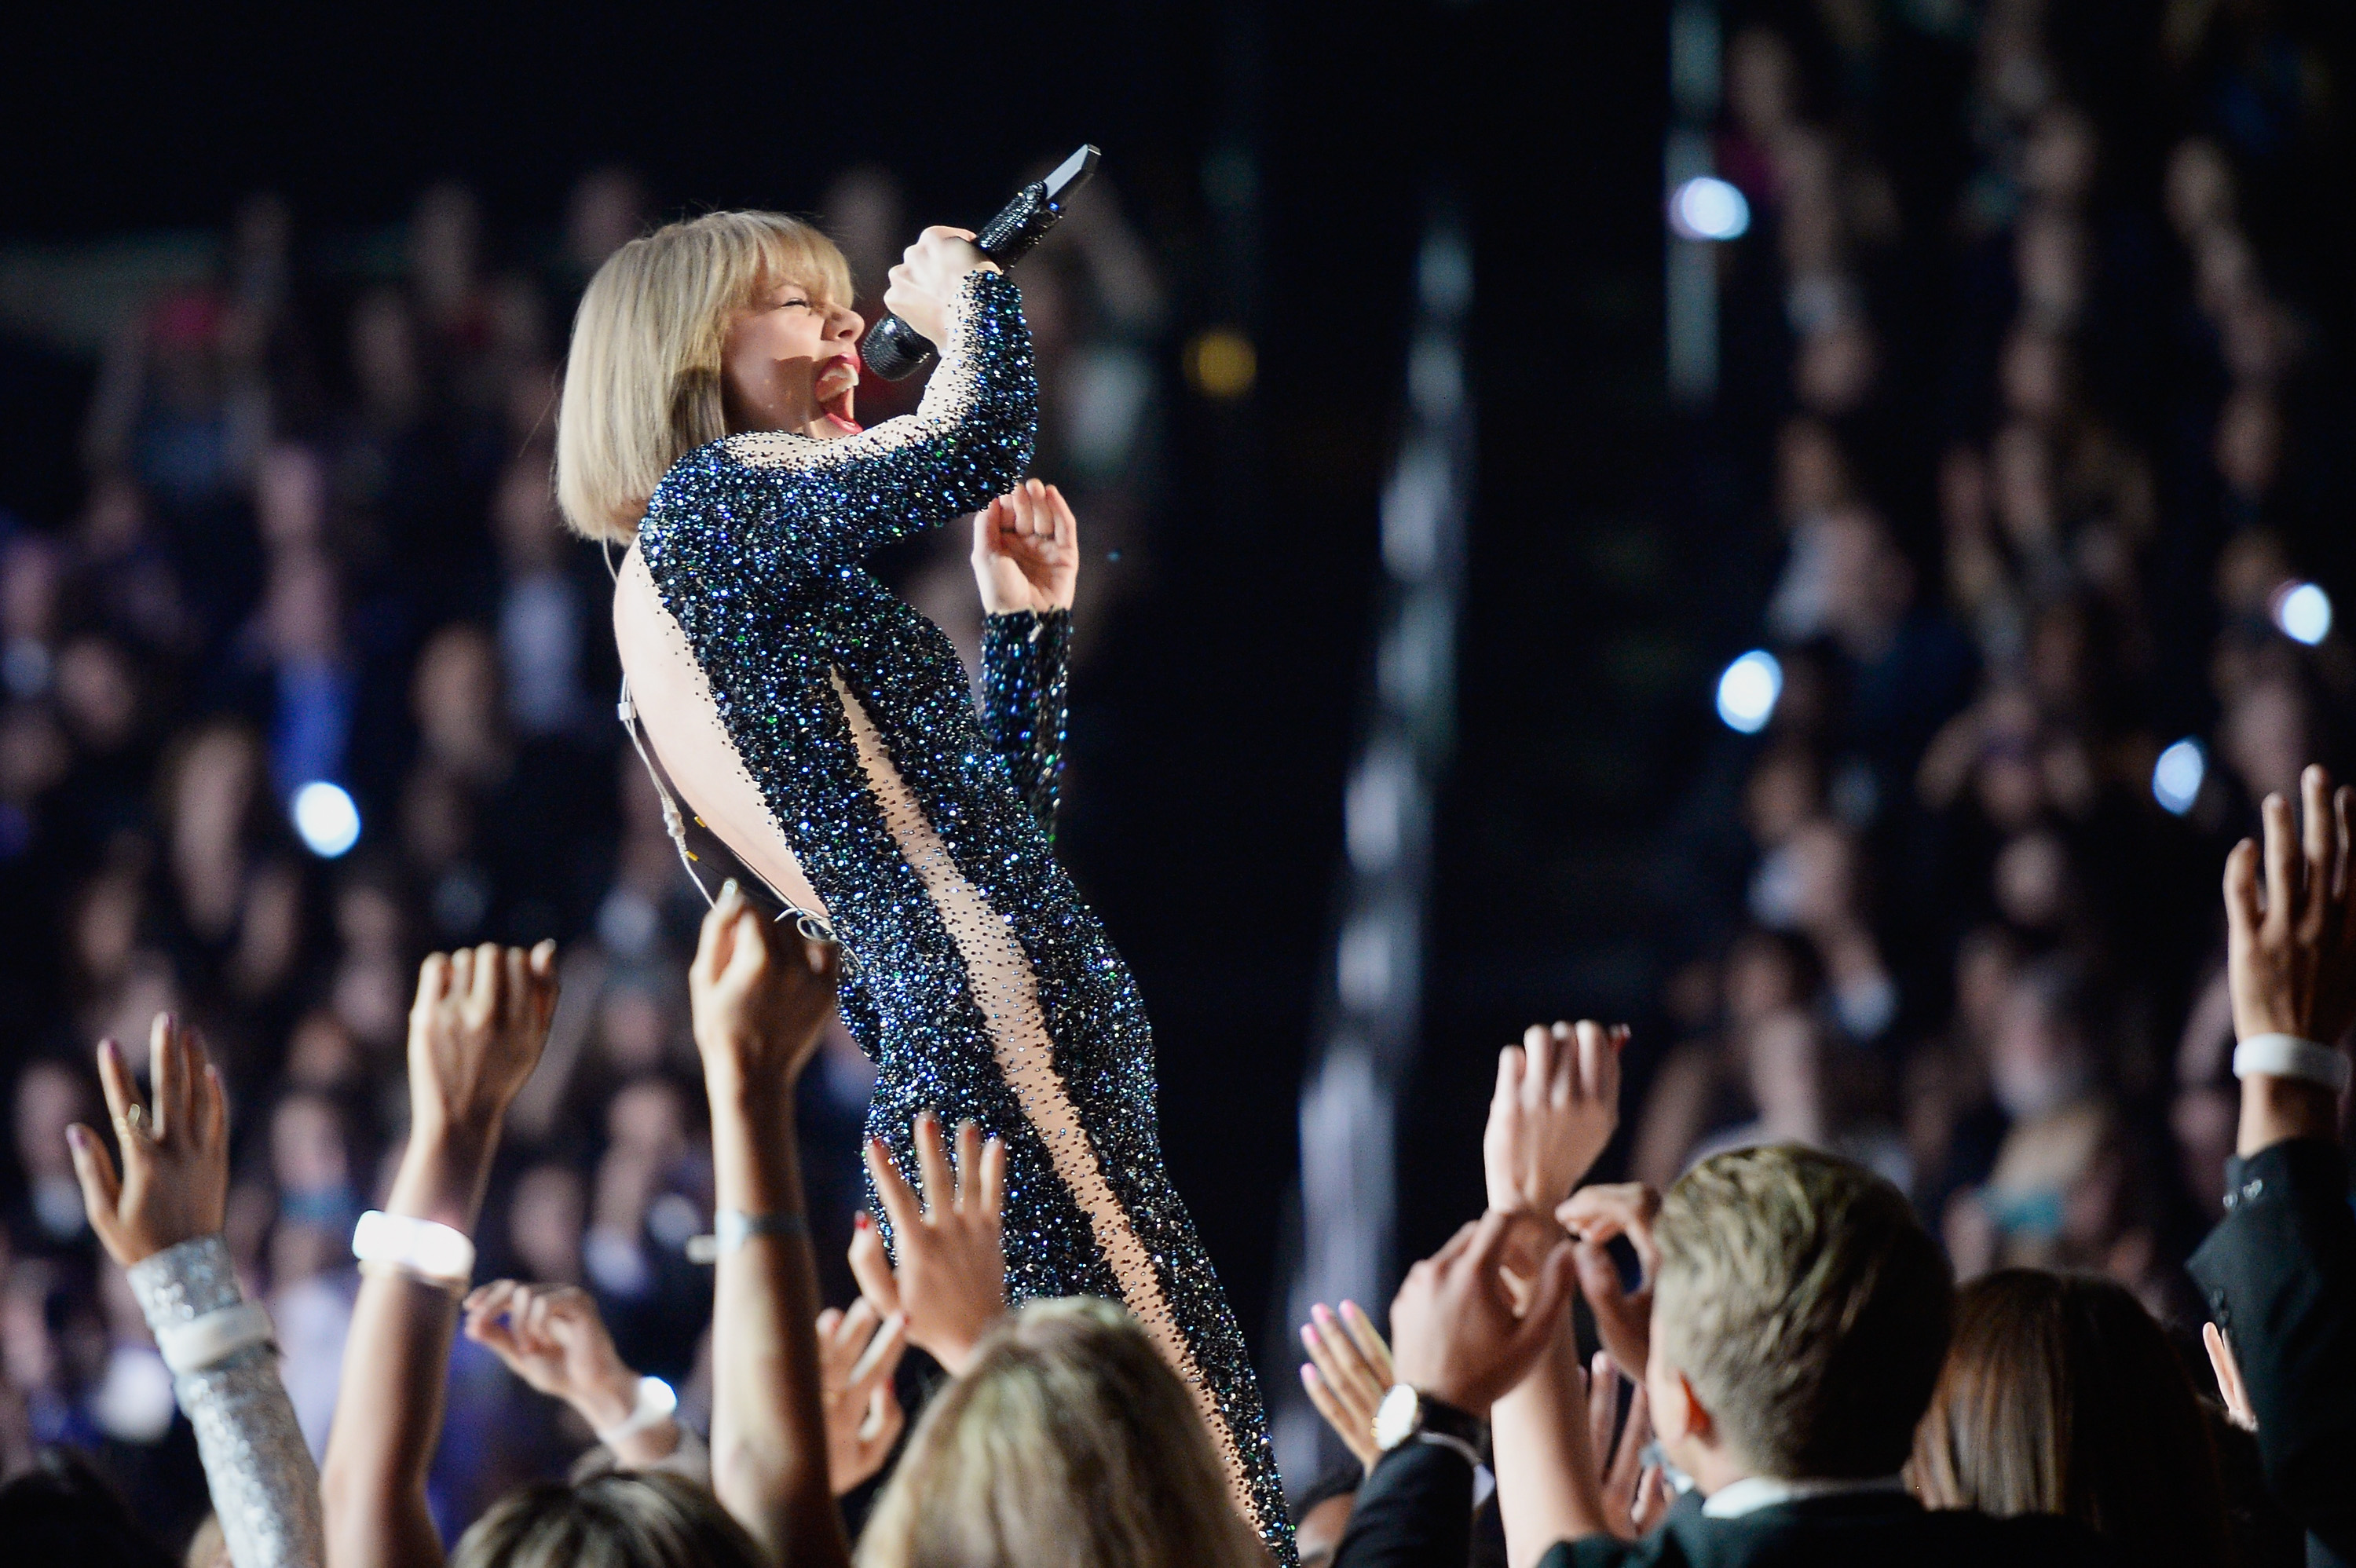 Grammys 2016 review: the music industry's fear of Spotify, explained in one awards ceremony